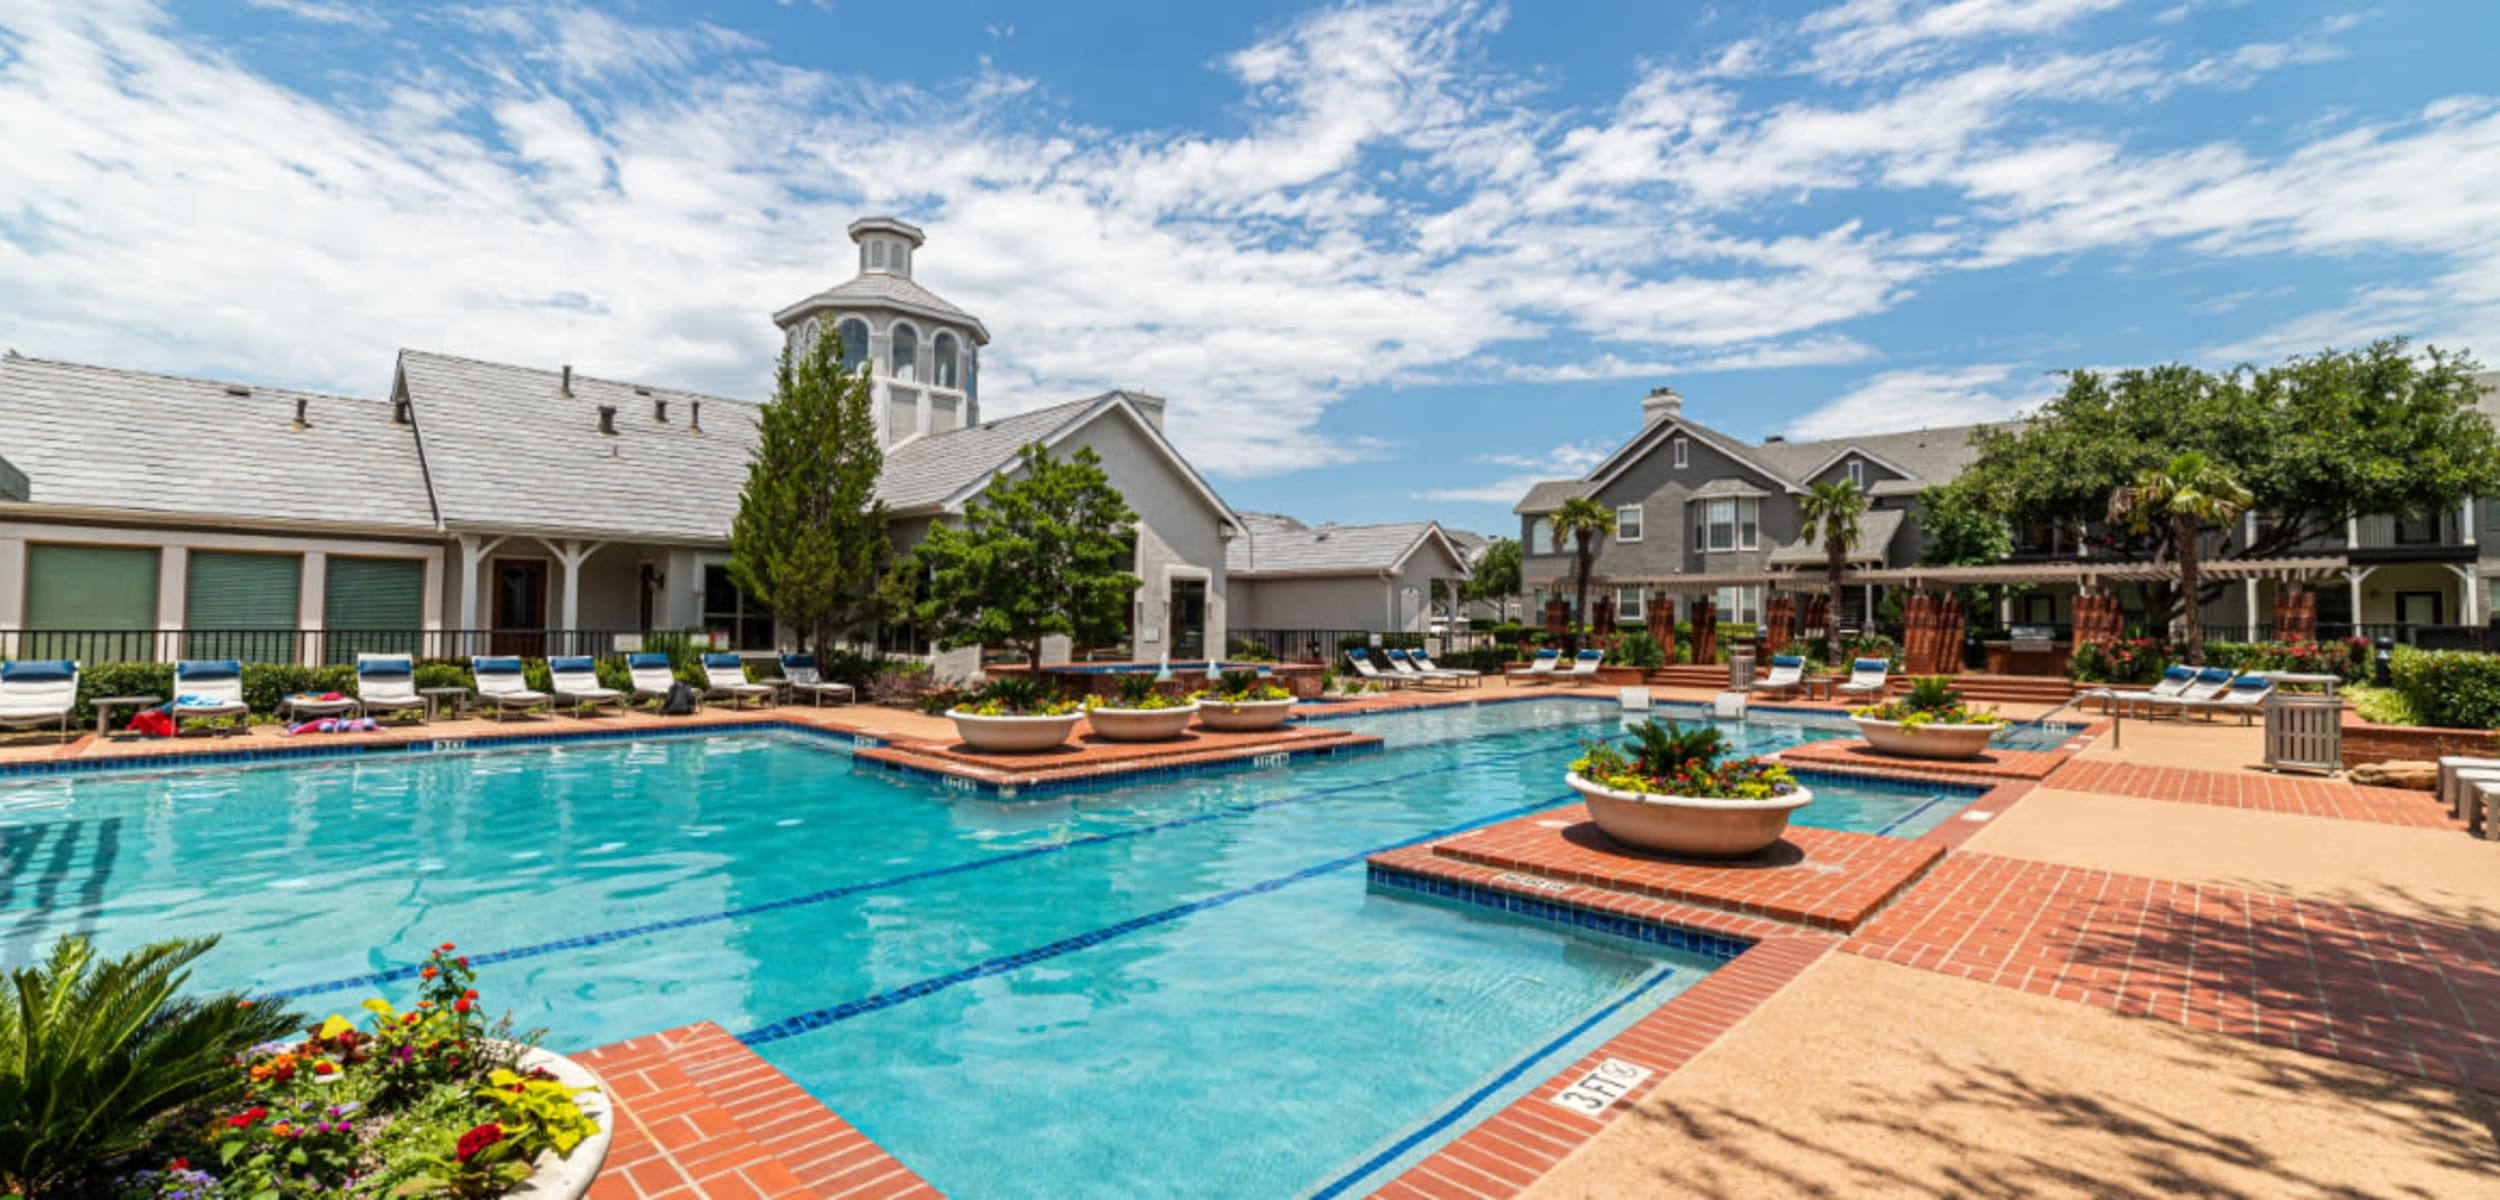 Sparkling pool with swim lanes at Marquis at Lantana in Flower Mound, Texas